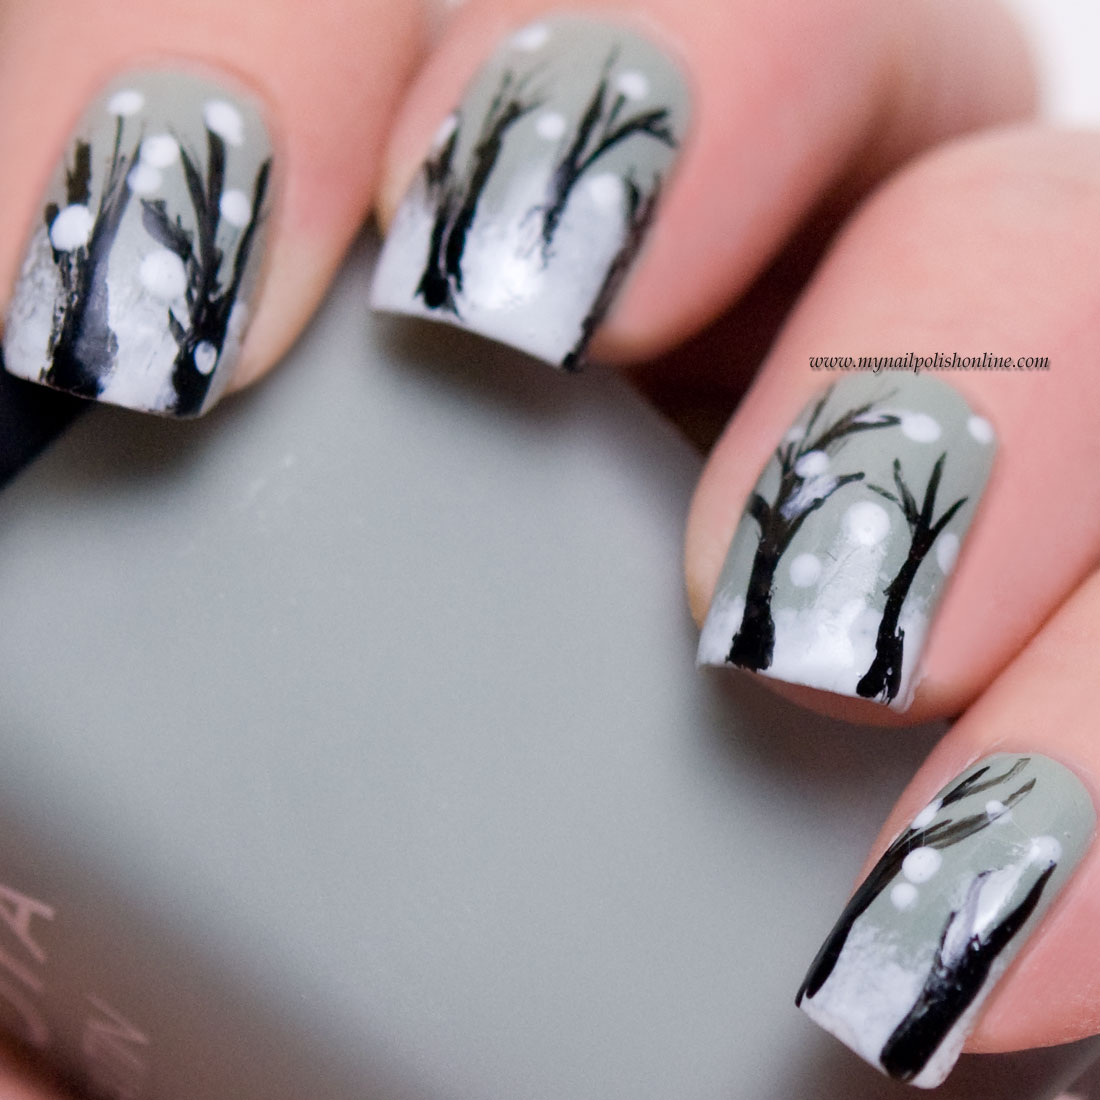 Winter Nail Art: It's Snowing In The Woods!